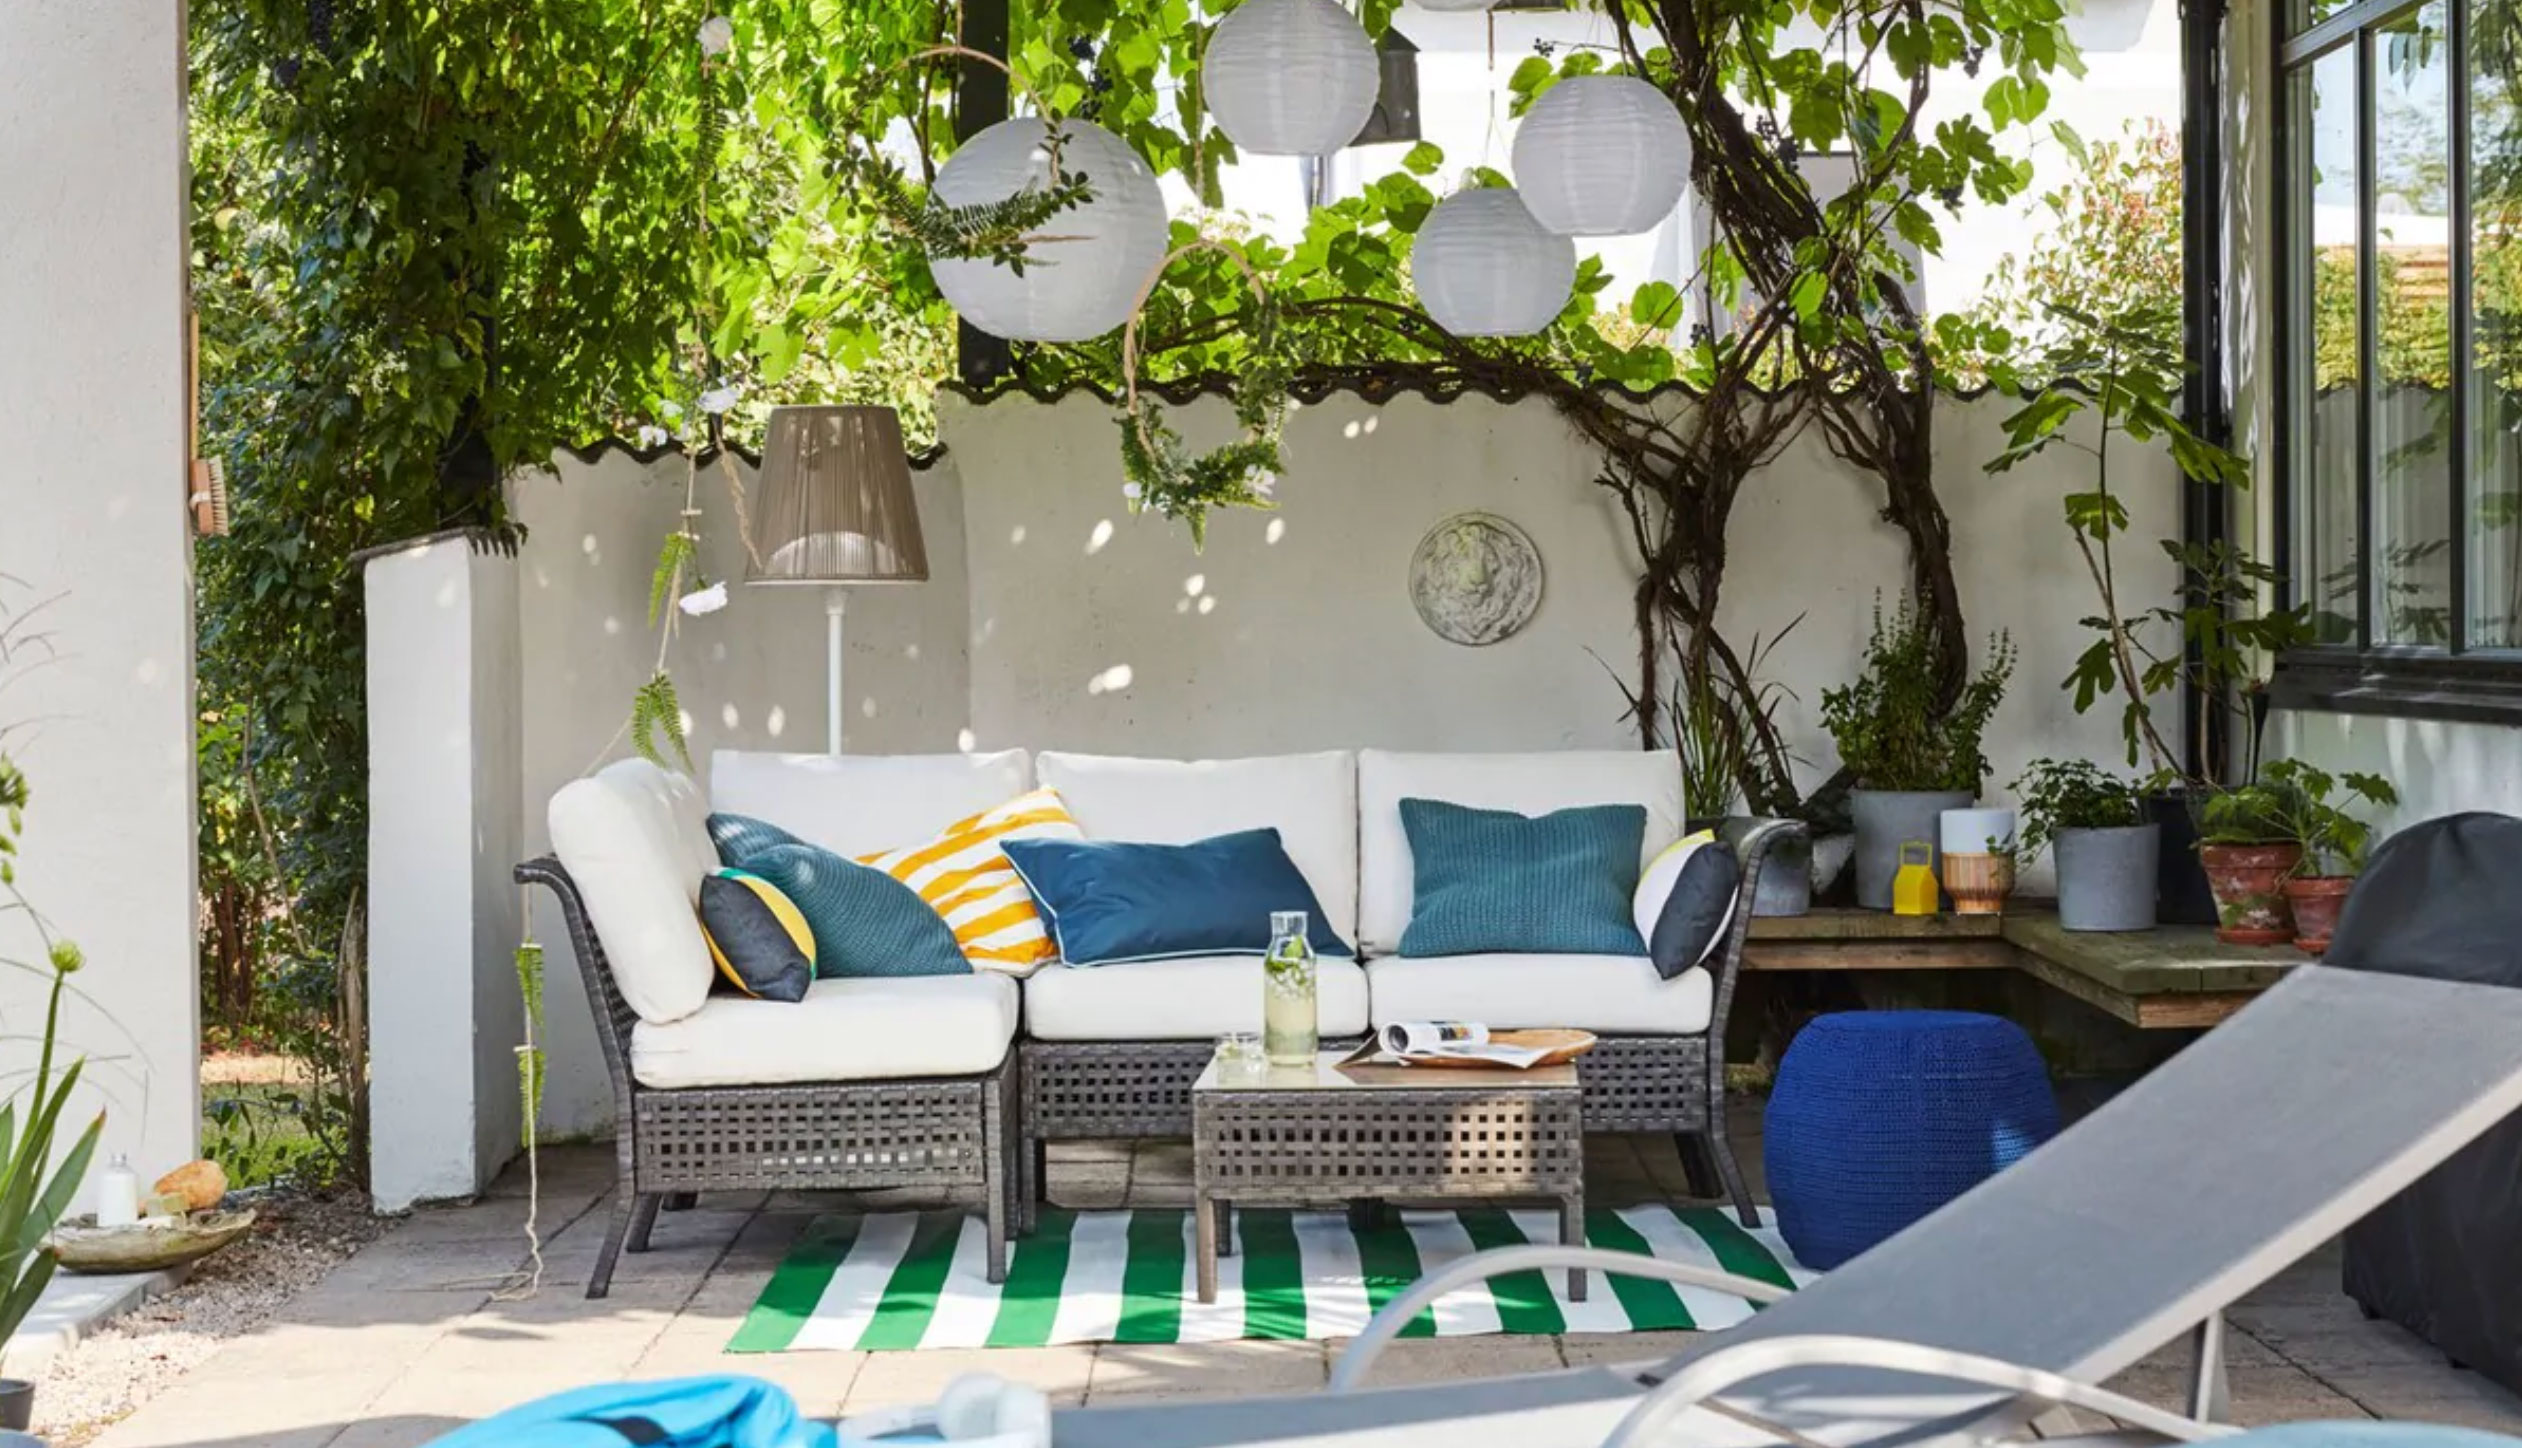 Small garden ideas: 12 looks to copy in your tiny garden space